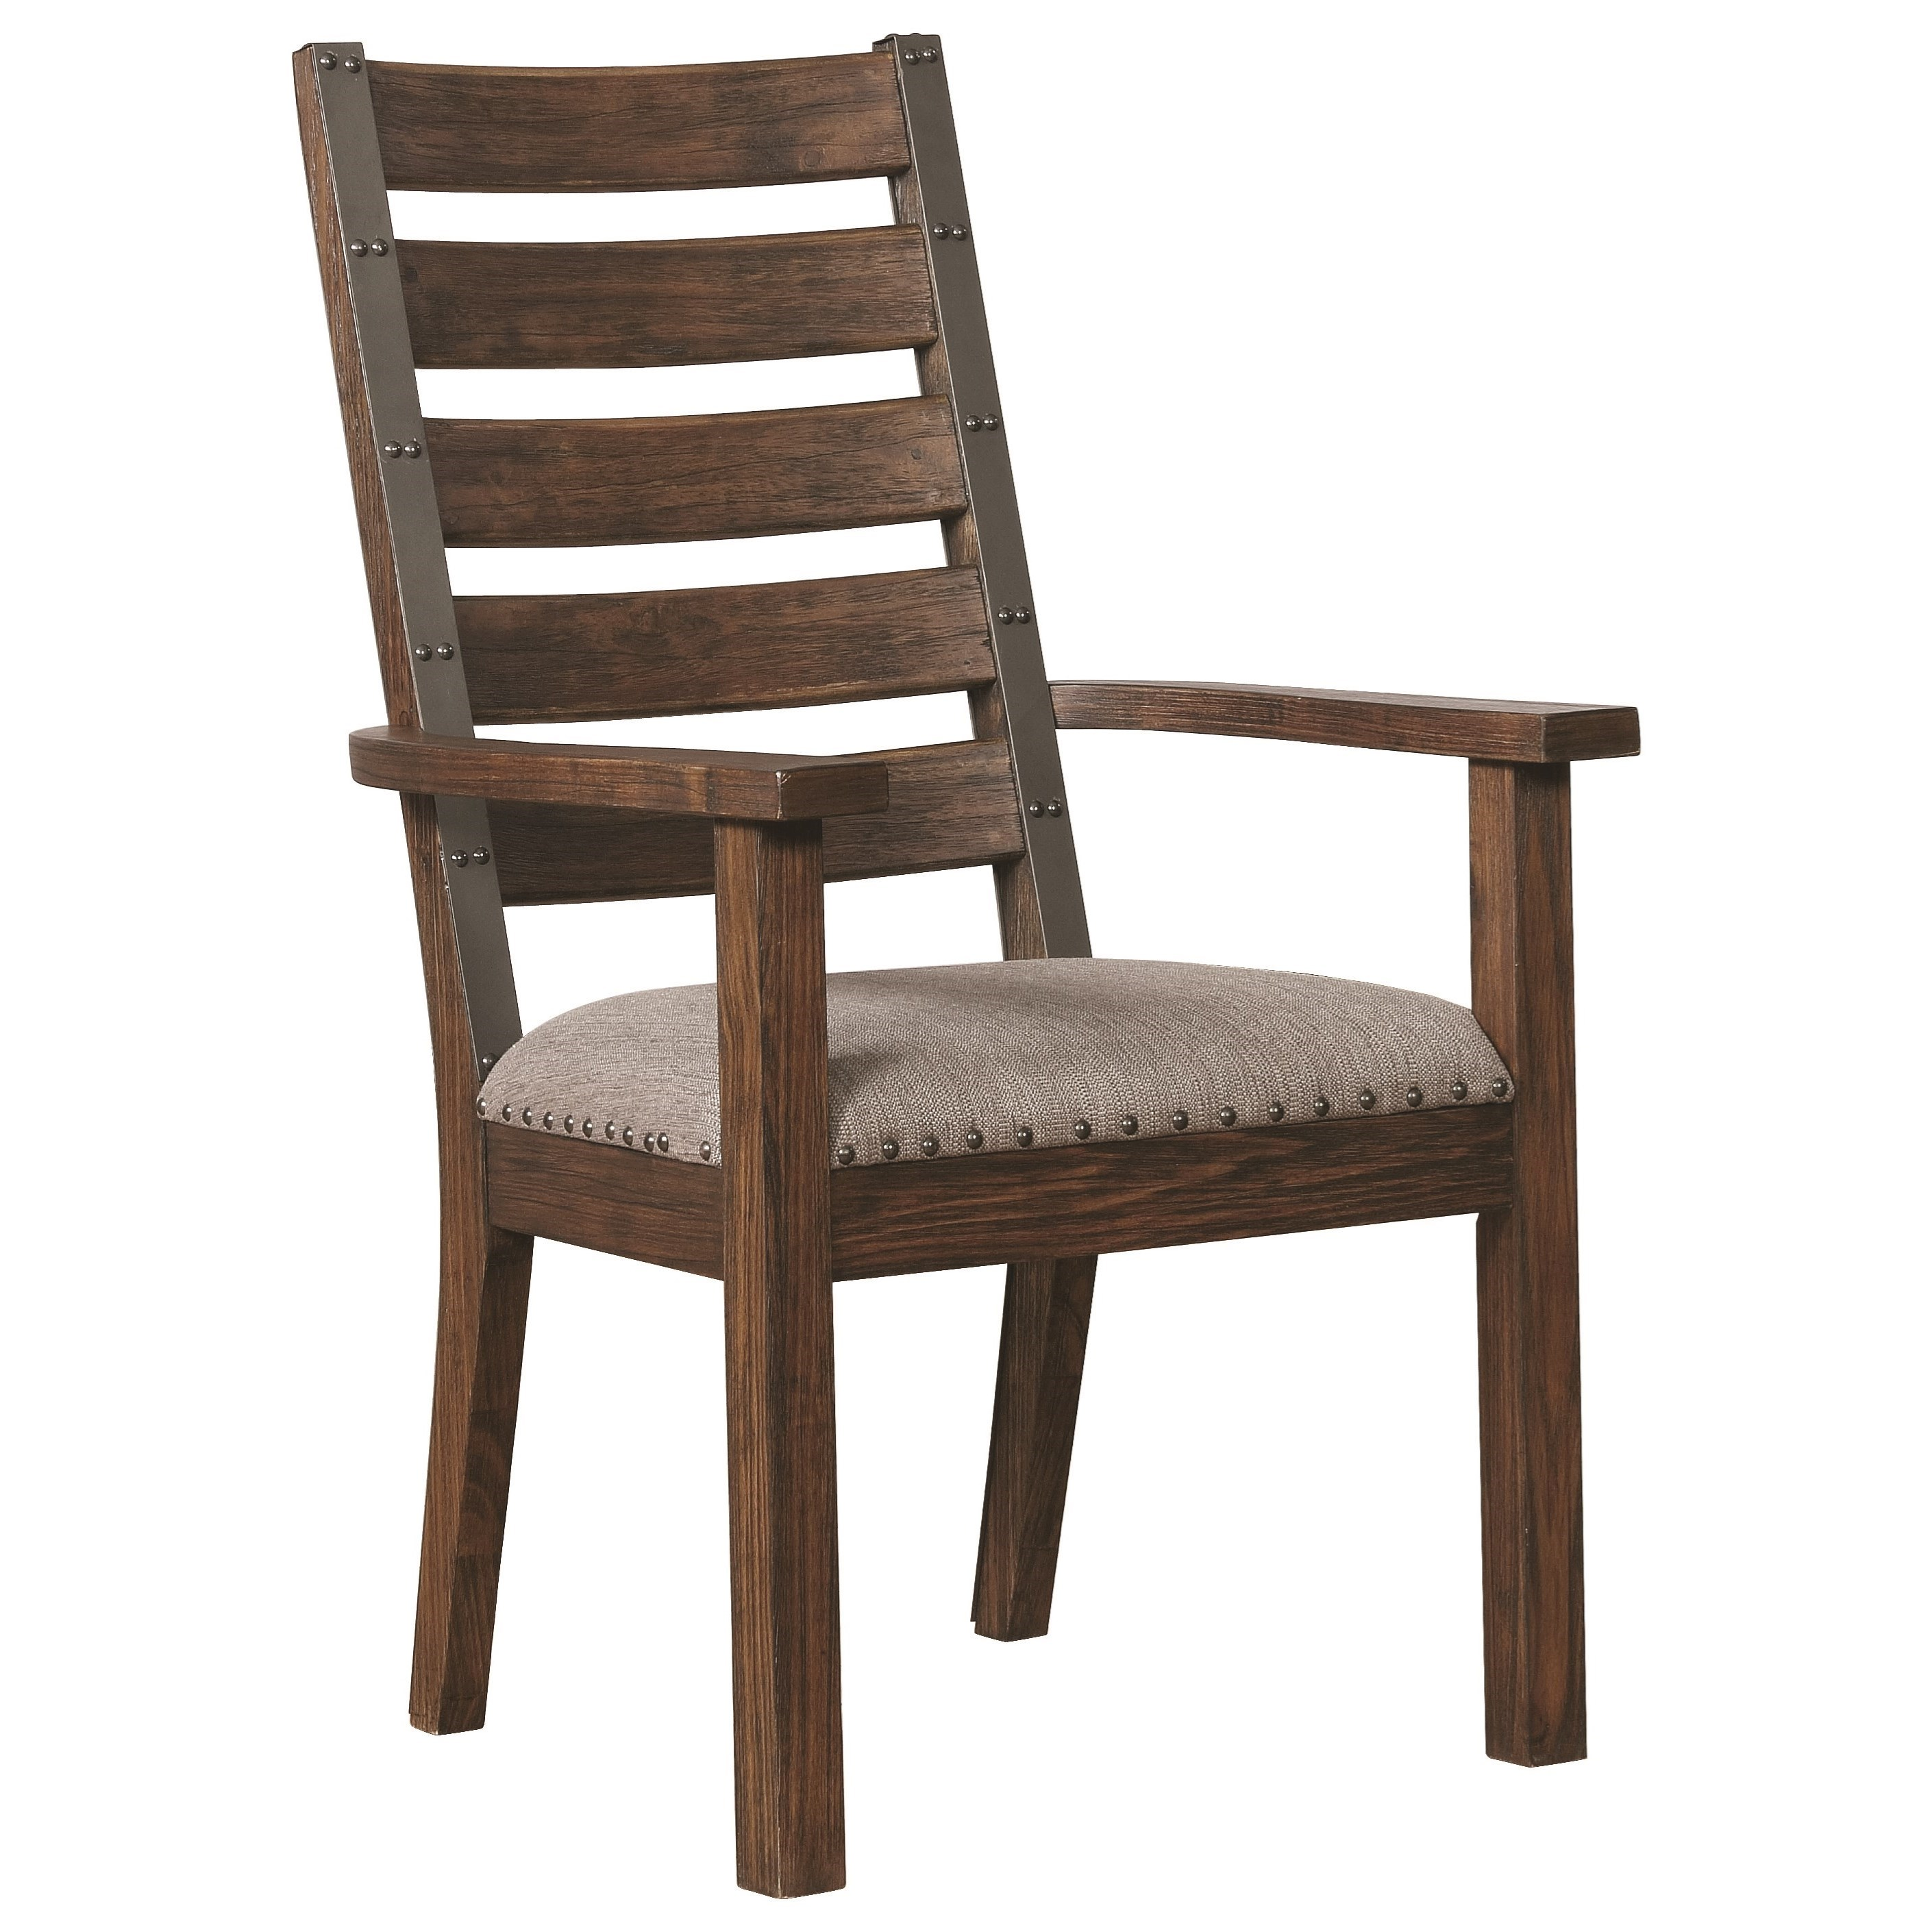 Scott Living Atwater Arm Chair - Item Number: 107723